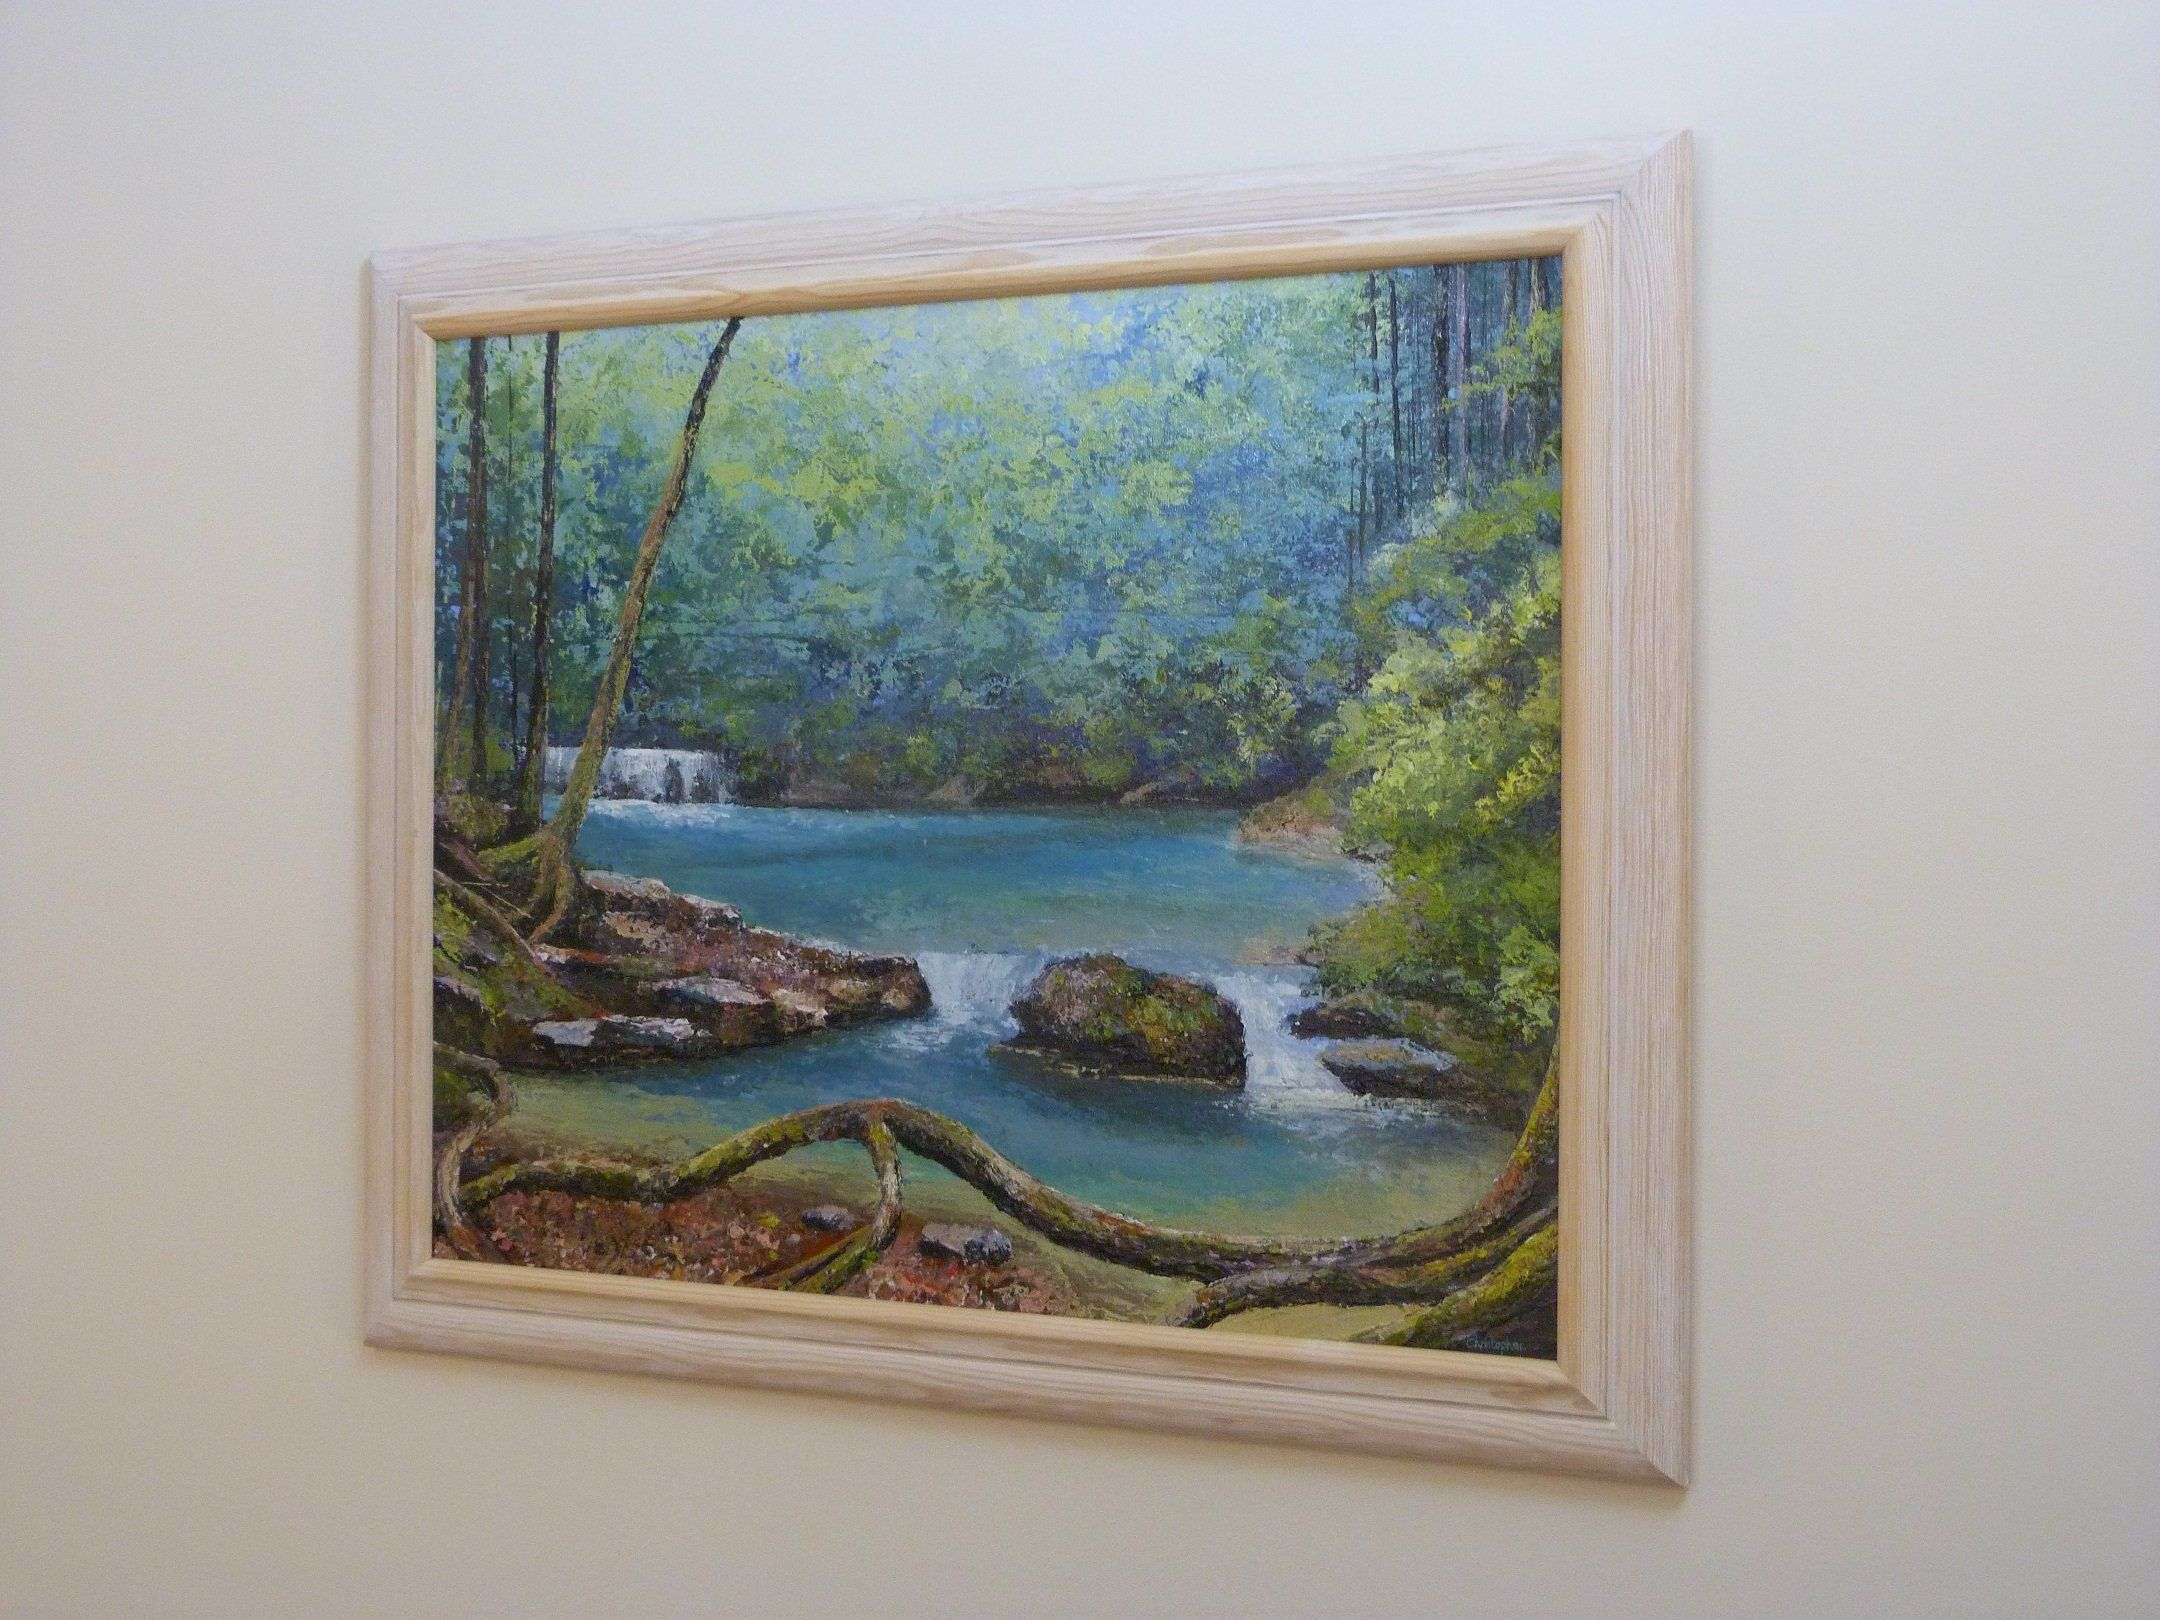 forest opening. painted with painting knives using acrylic paints